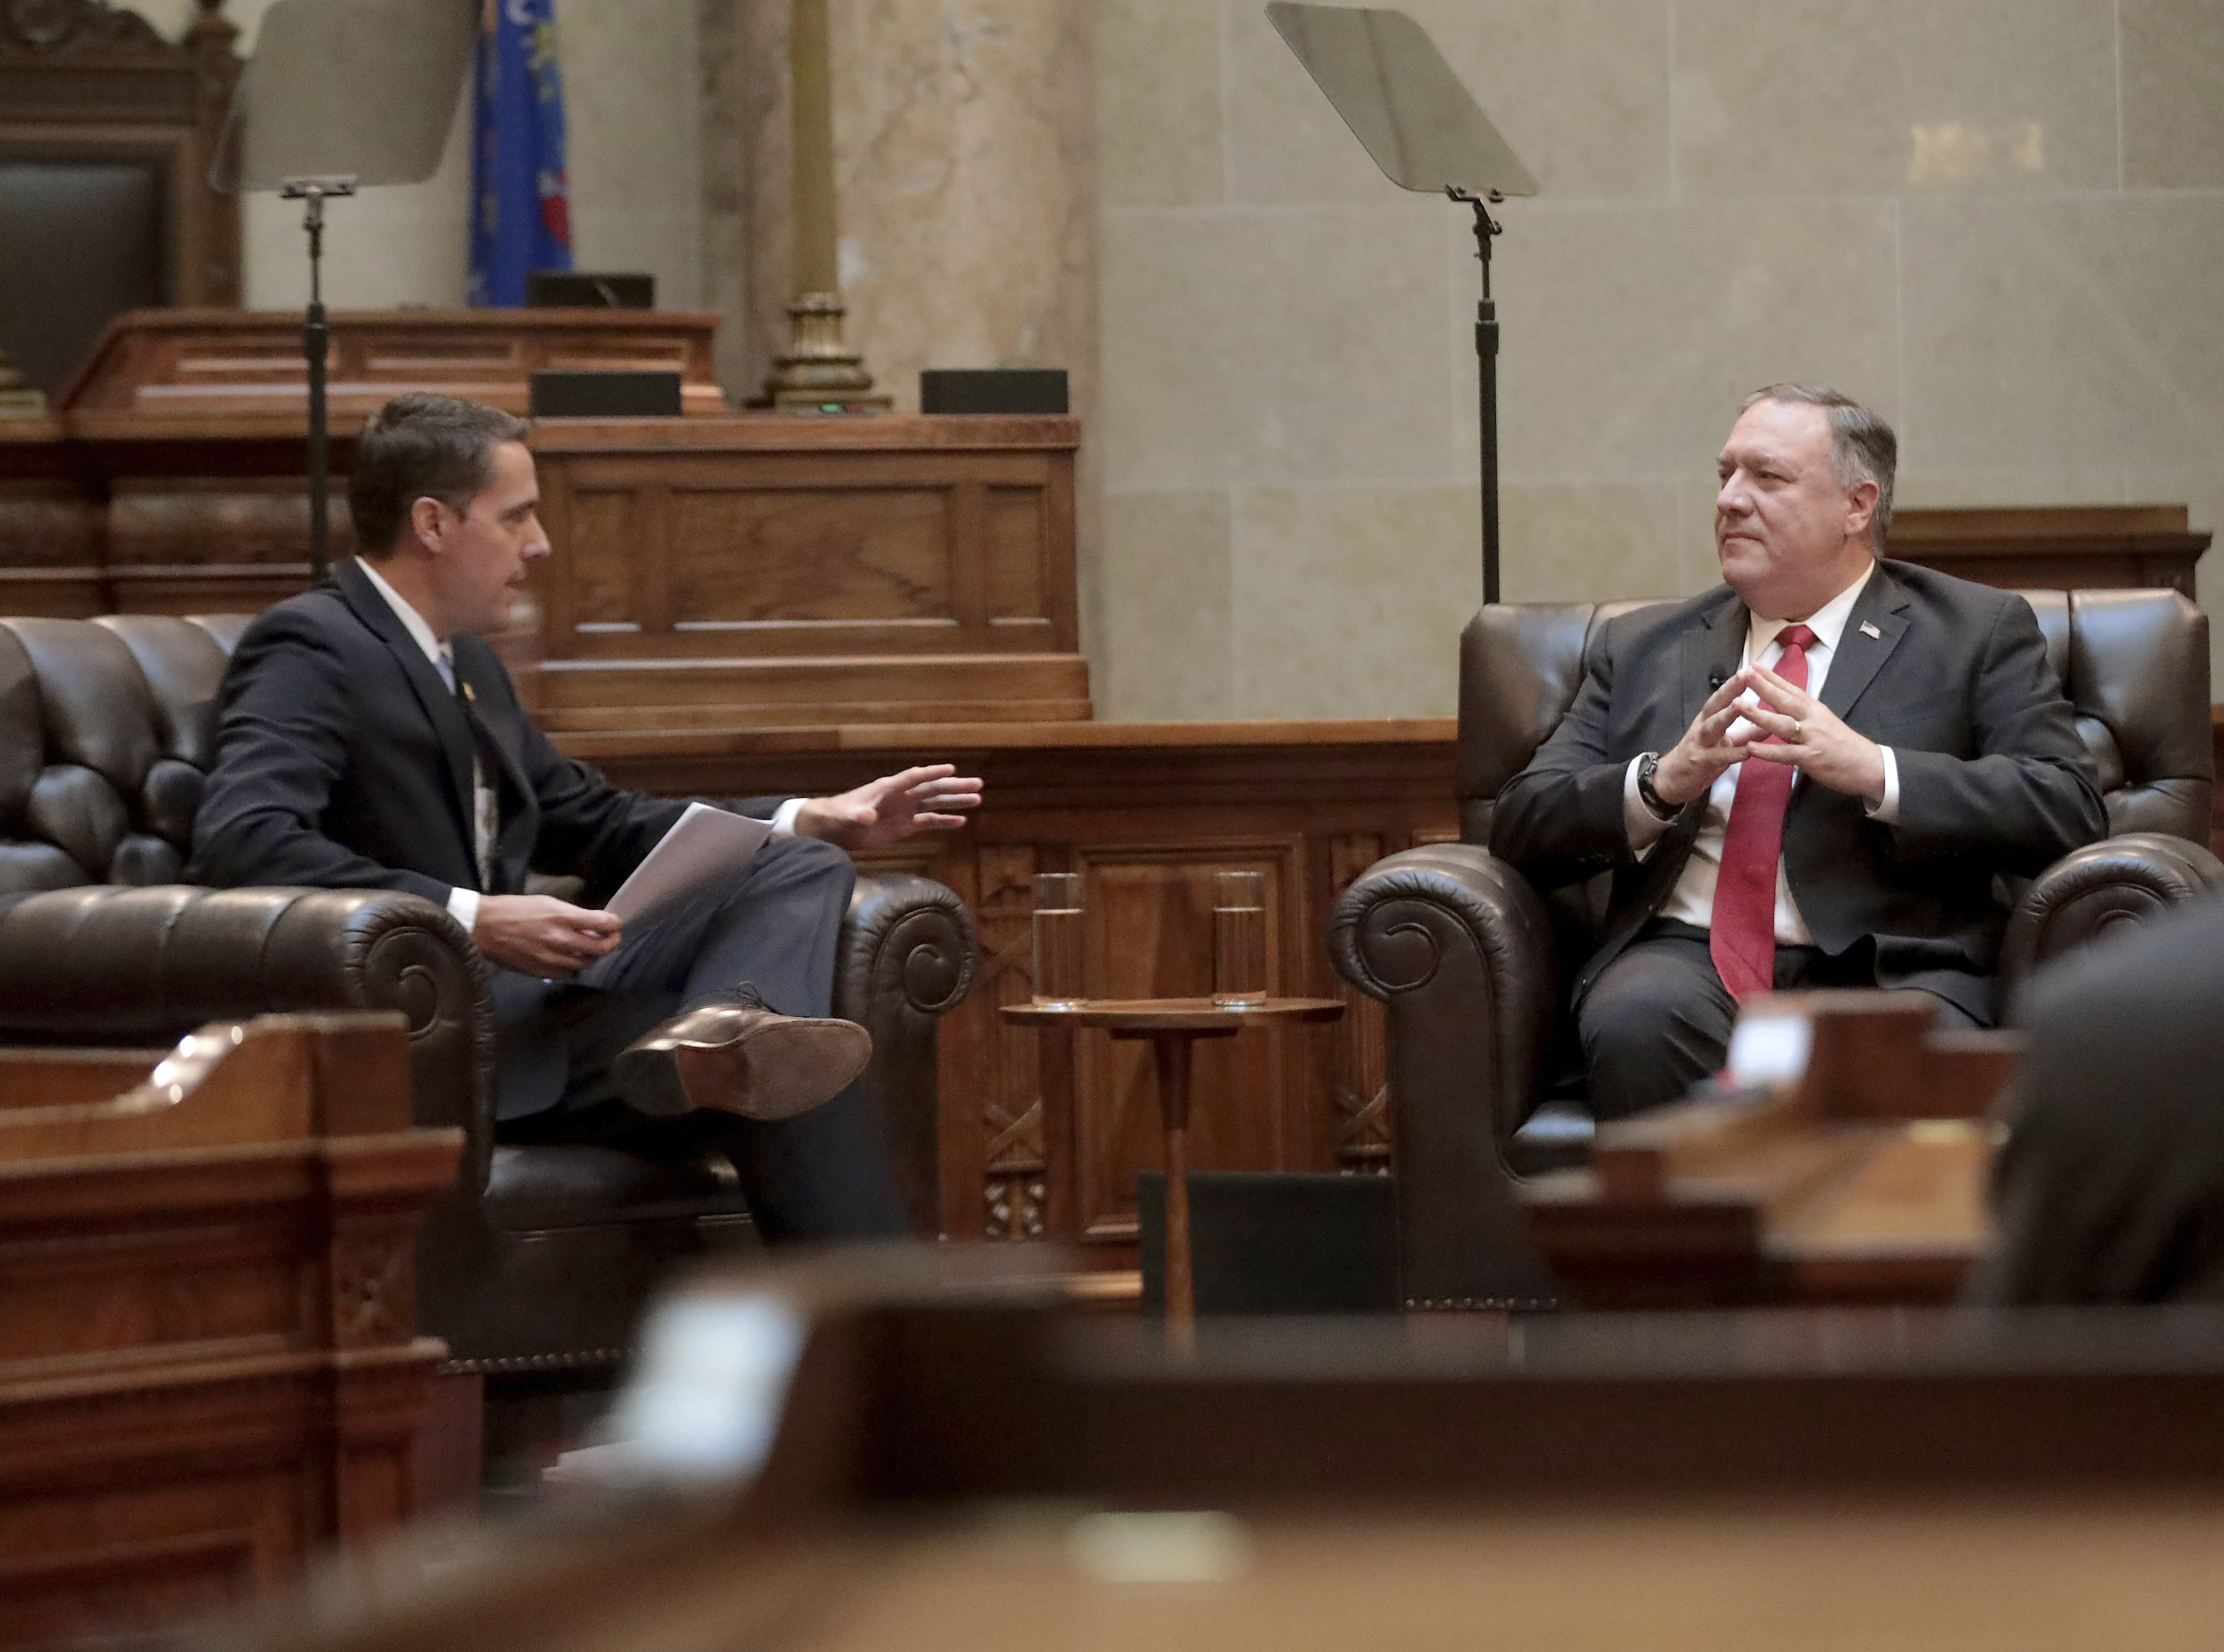 Secretary of State Mike Pompeo , right, listens to a question from Wisconsin Senate President Roger Roth, R-Appleton, during a question and answer sessions with state Republican legislators in the Senate chamber of the Wisconsin State Capitol in Madison, Wis. Wednesday, Sept. 23, 2020. (John Hart/Wisconsin State Journal via AP)